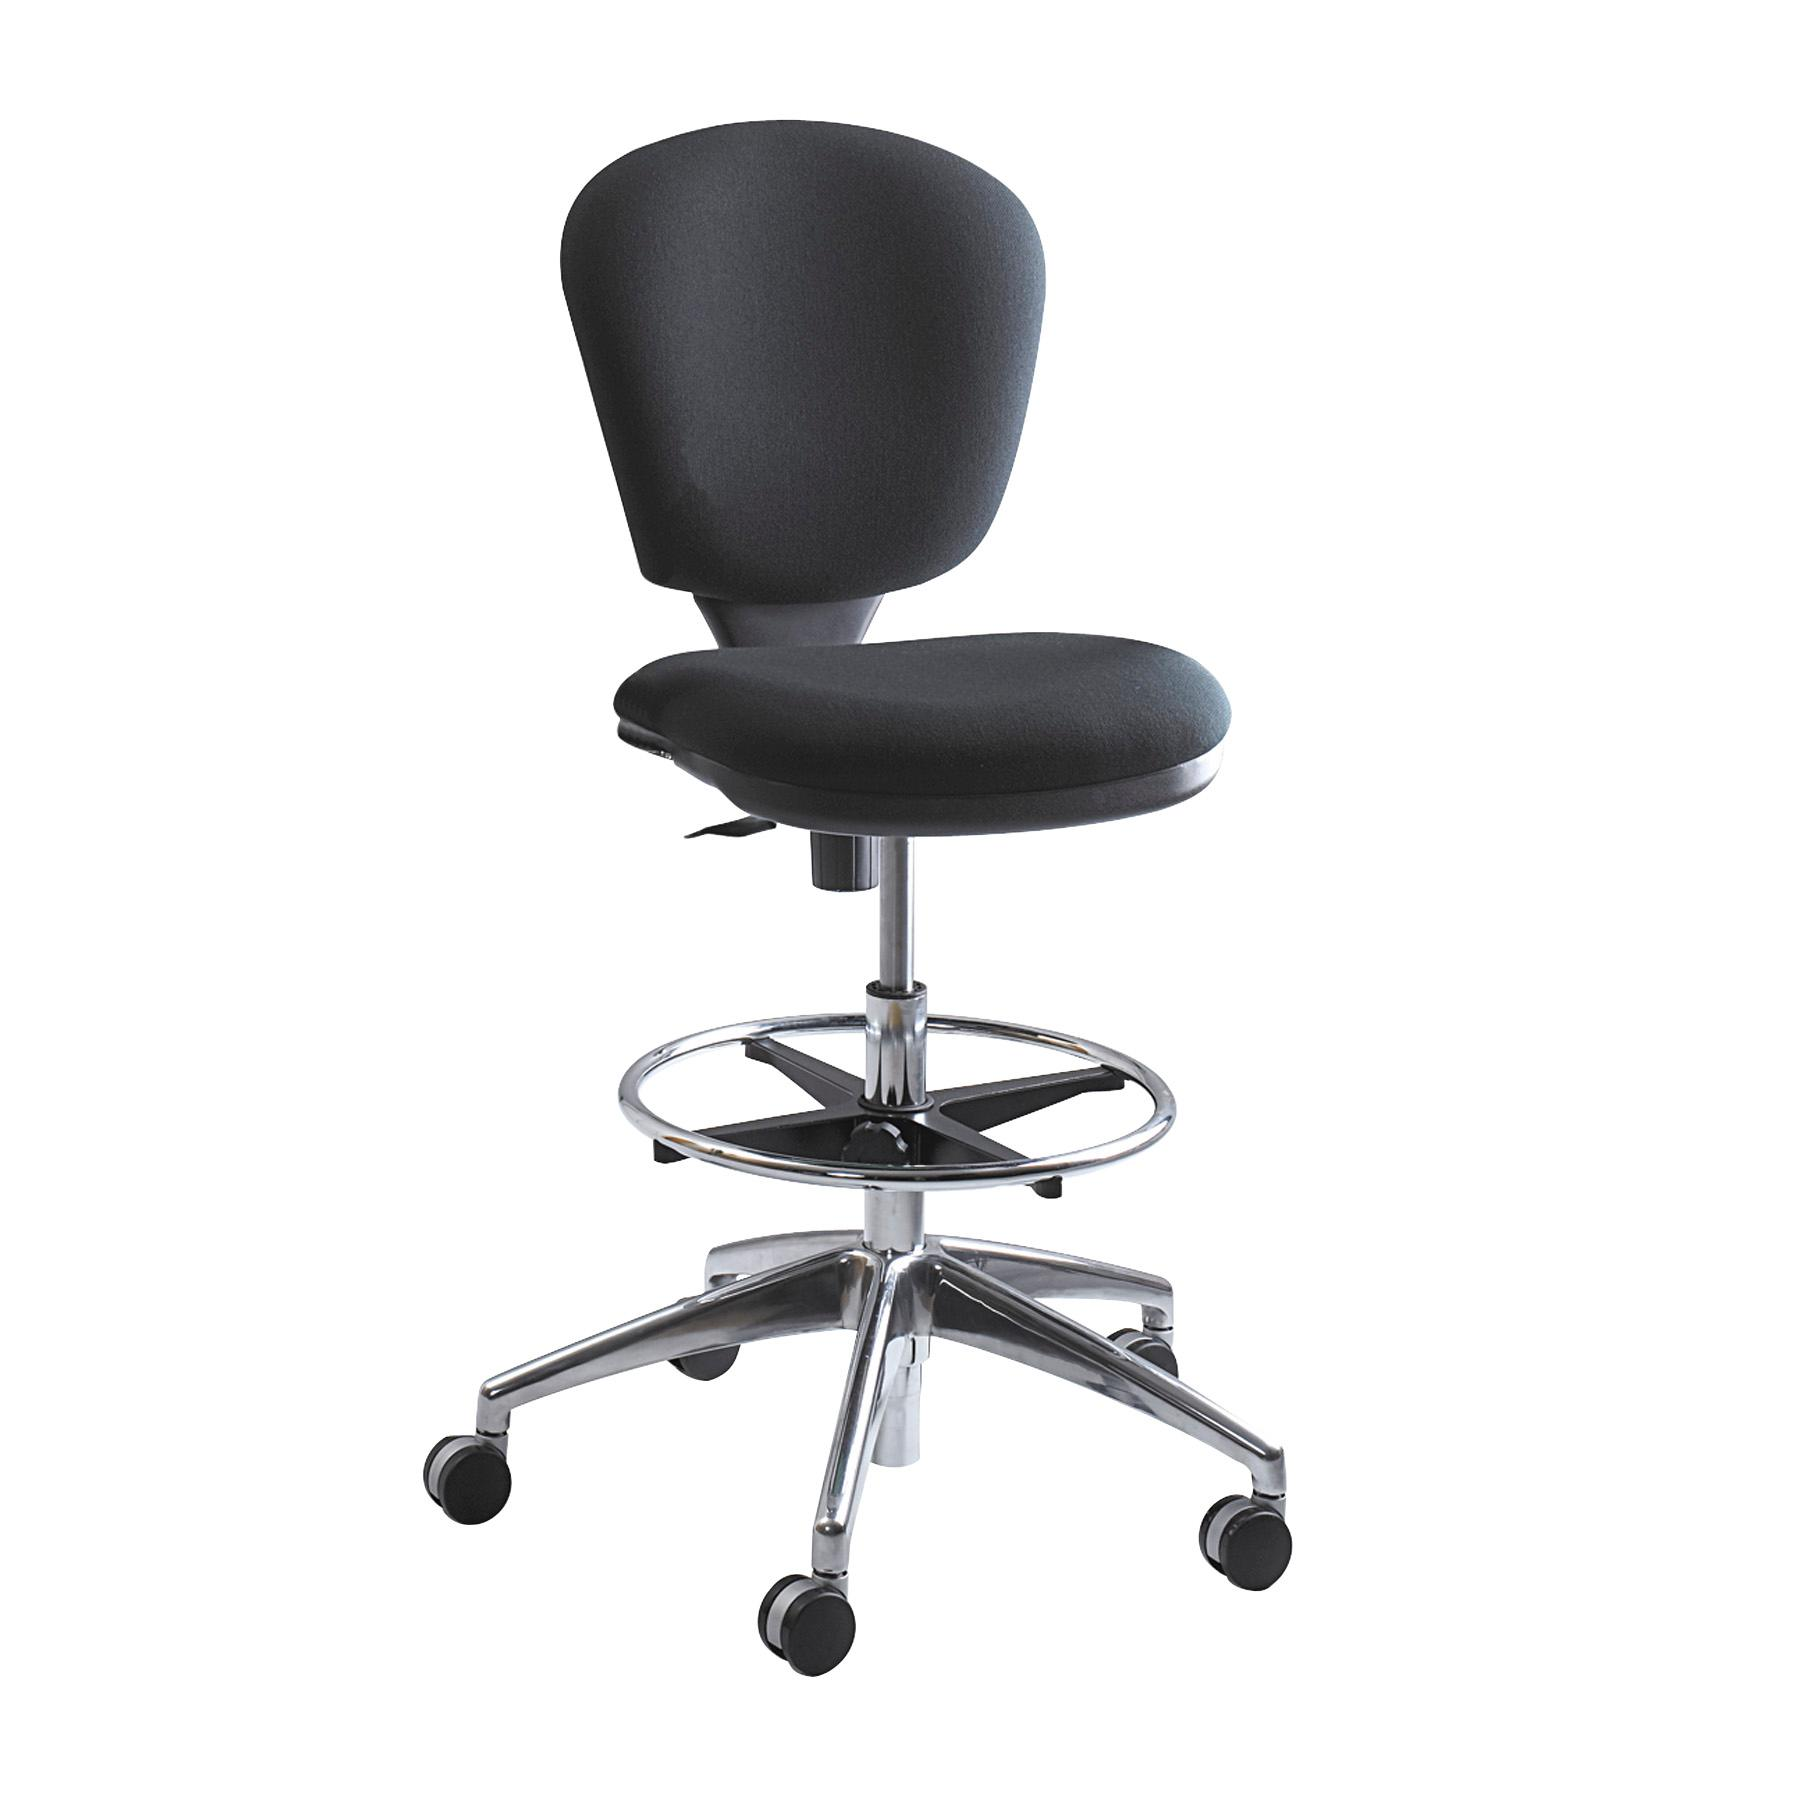 Chair seat stool extended height warehouse seat office chair  sc 1 st  Amazon.com & Amazon.com: Safco Products 3442BL Metro Extended Height Chair ... islam-shia.org